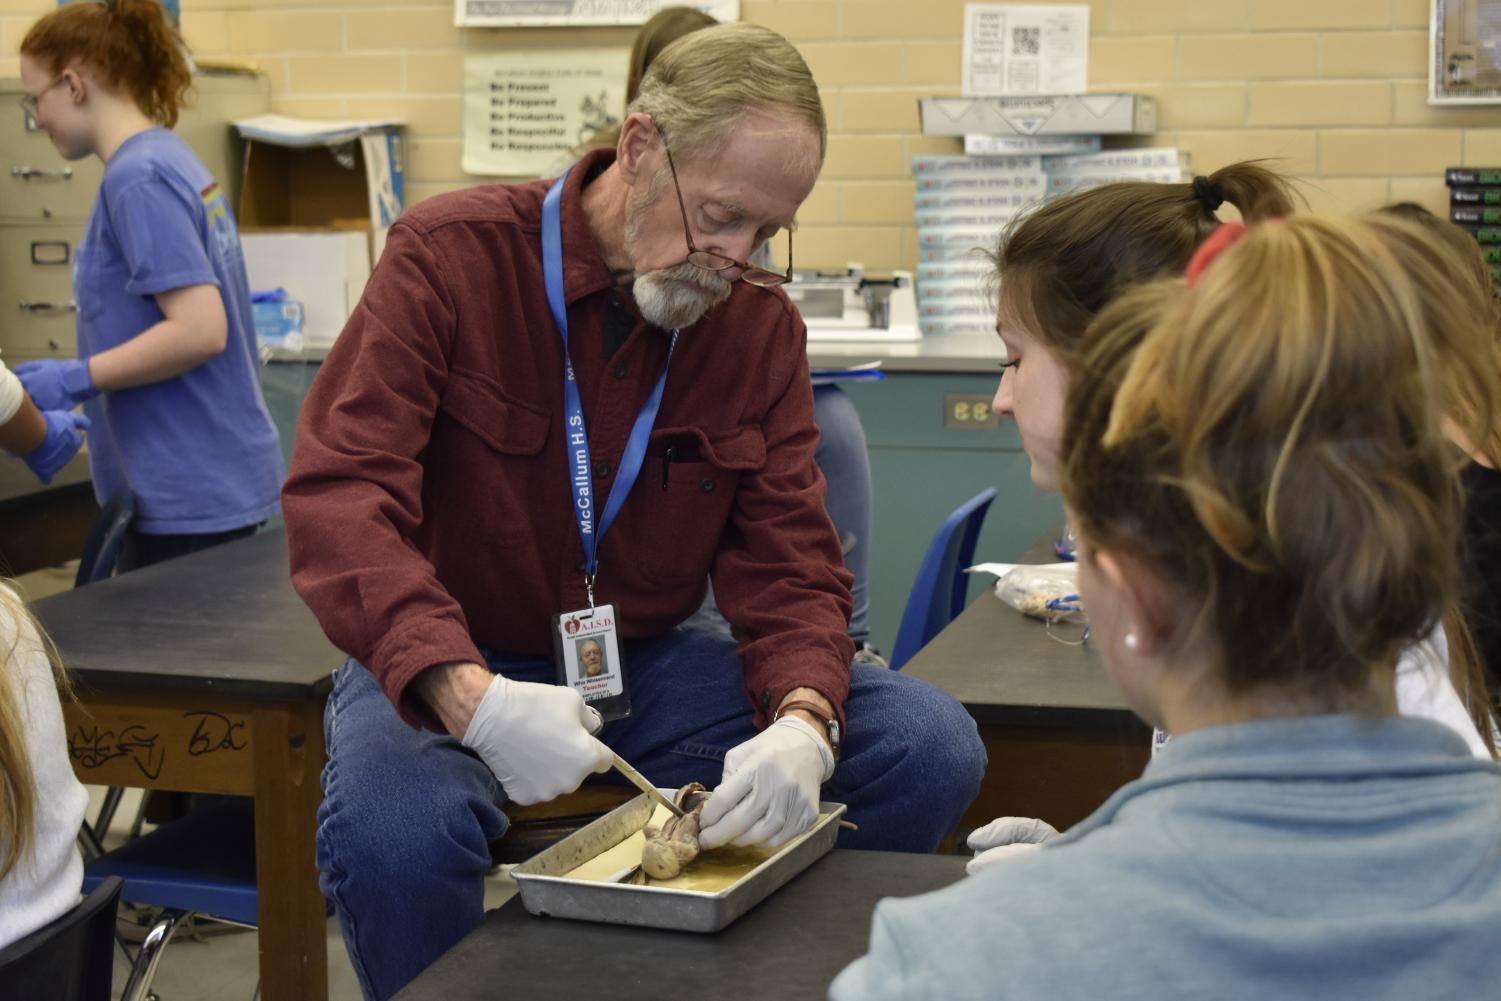 Whisennand helps students with their rat dissections in his Anatomy and Physiology class.